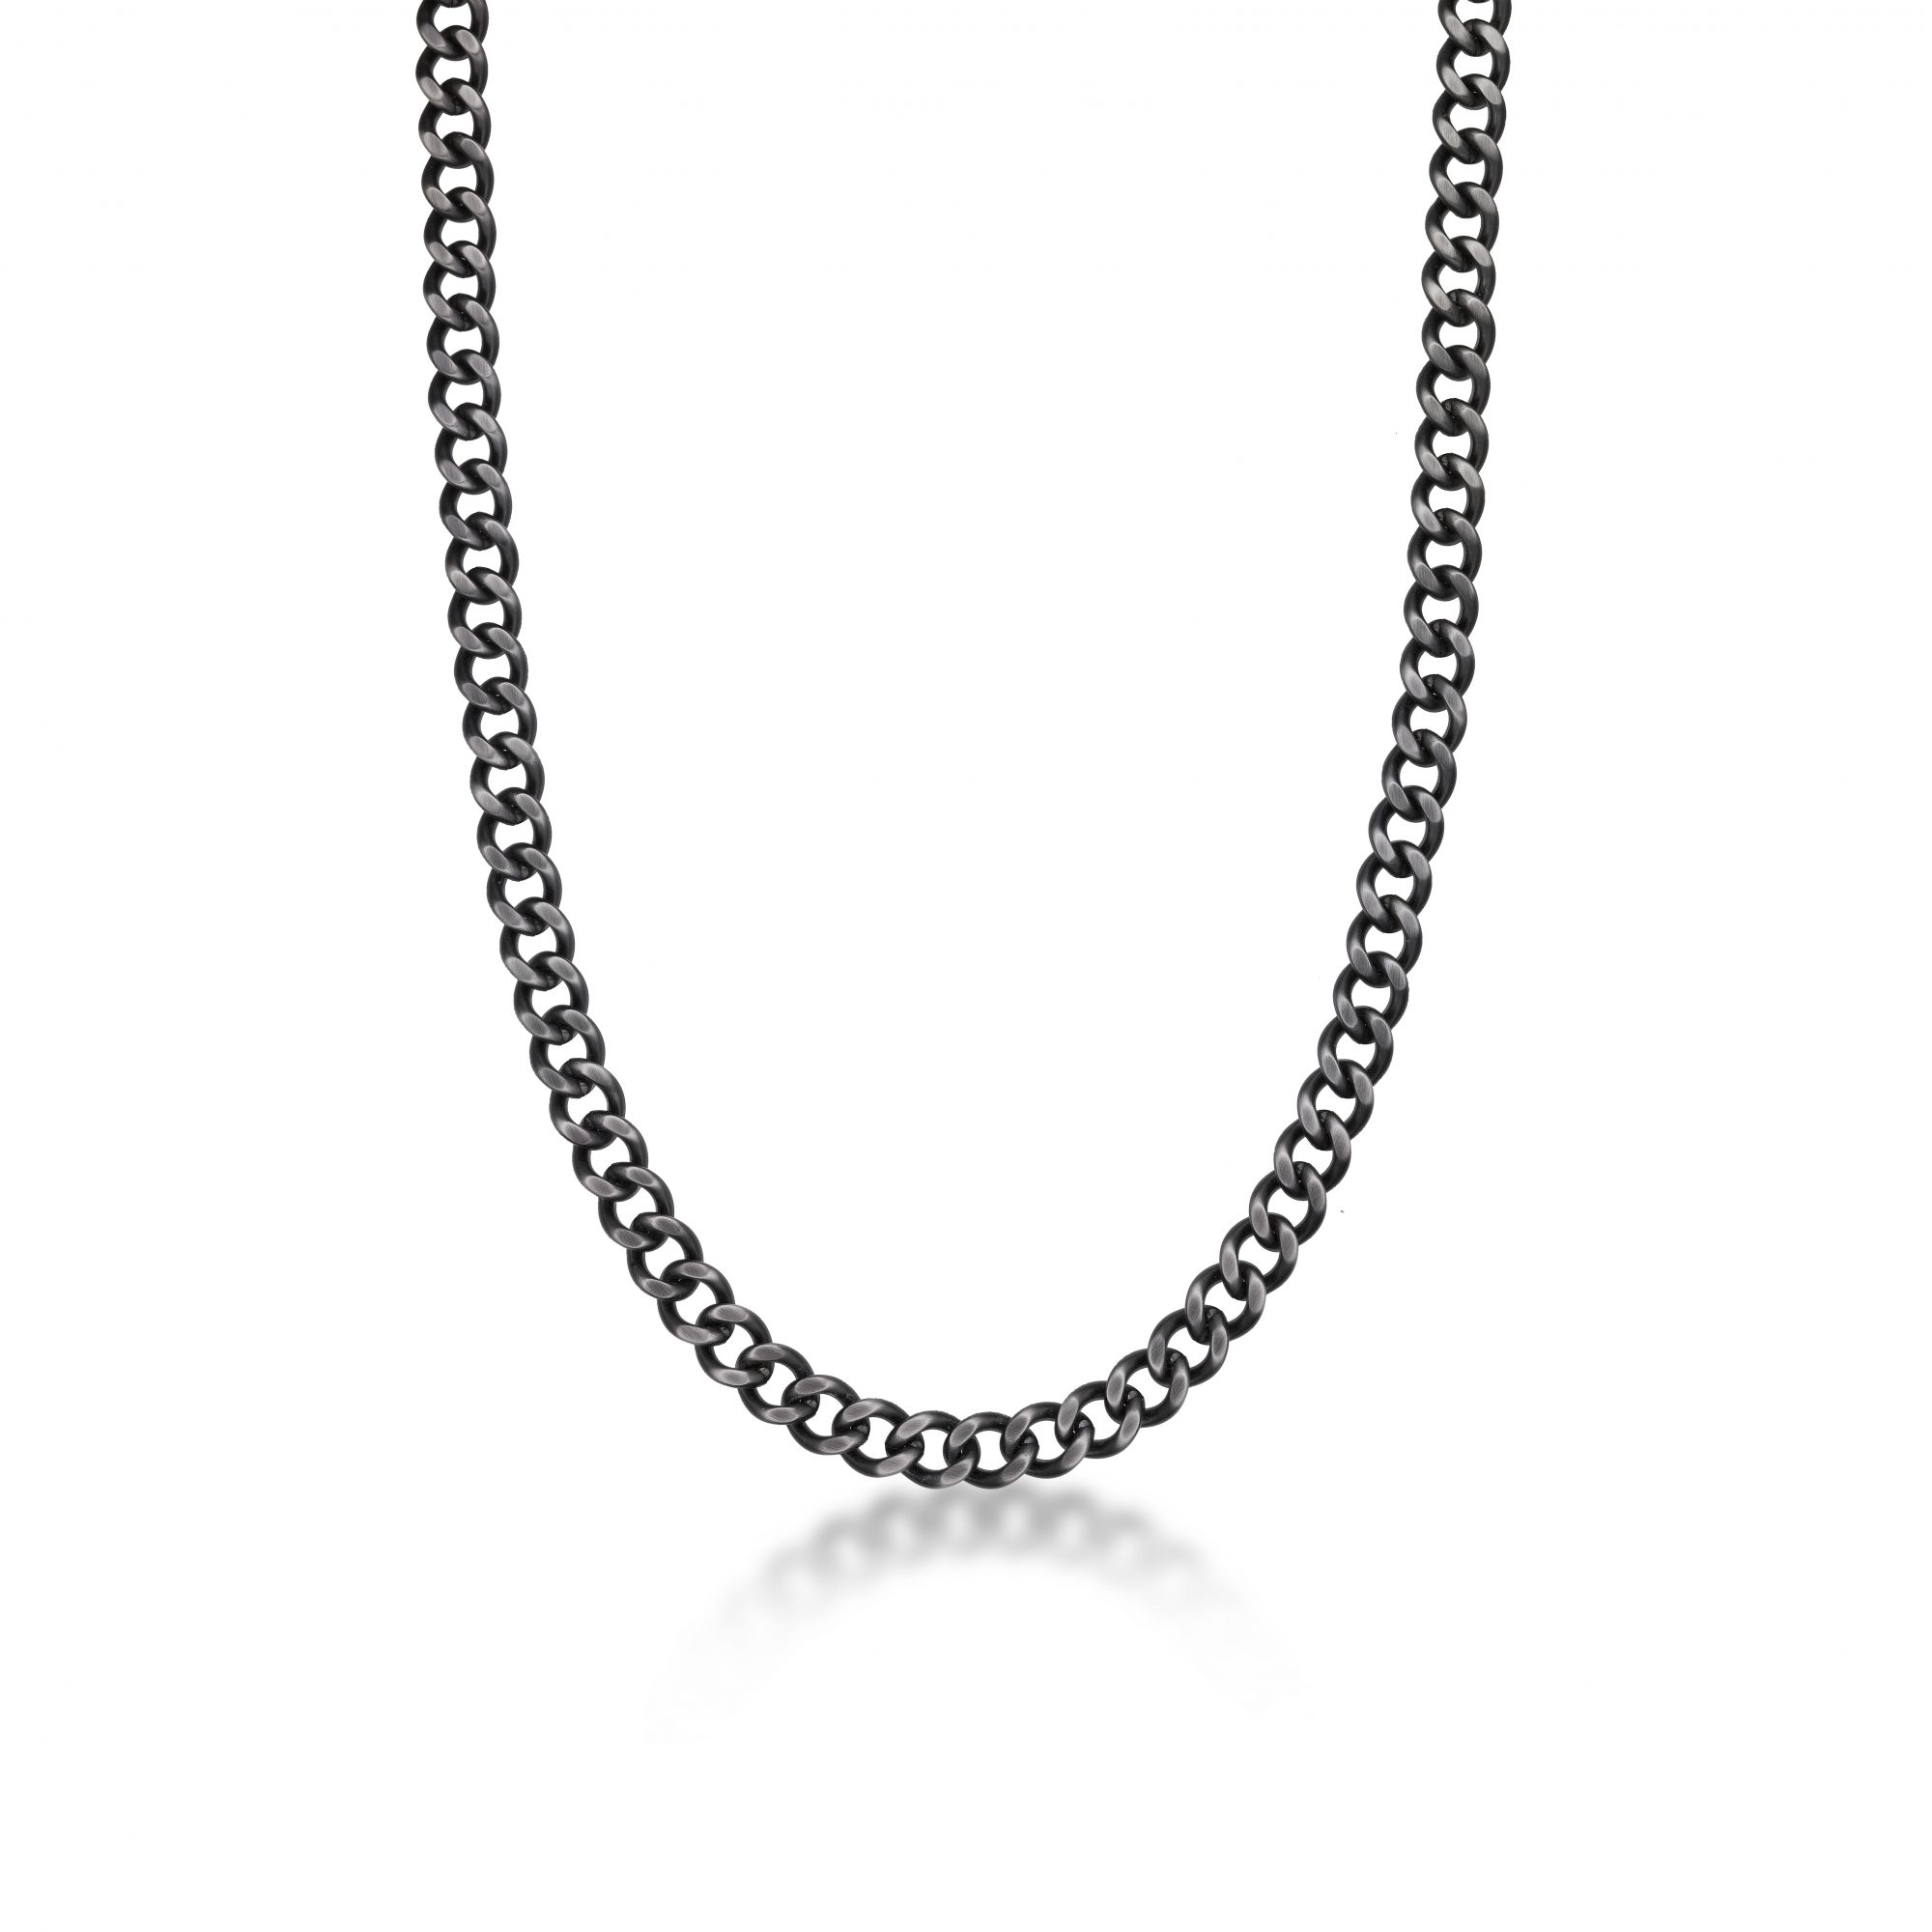 Stainless Steel Antique Ion Plated Curb Chain Necklace - 9 MM Wide, 24 Inches Length with Lobster Clasp